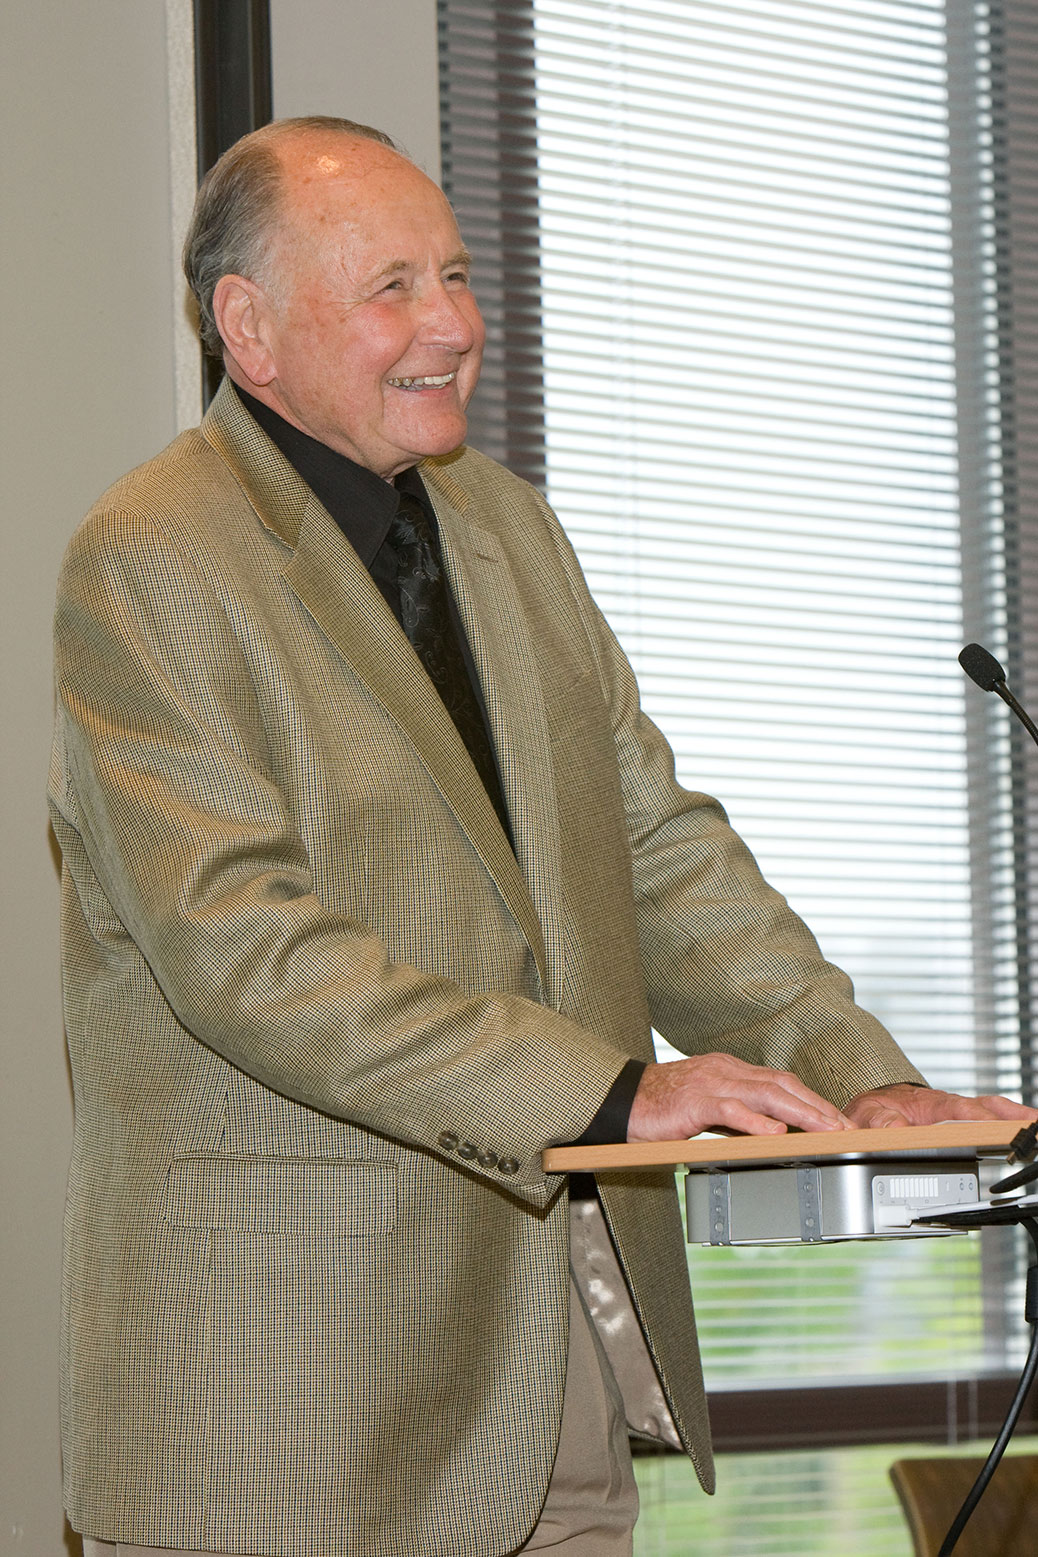 Man standing at a podium and smiling